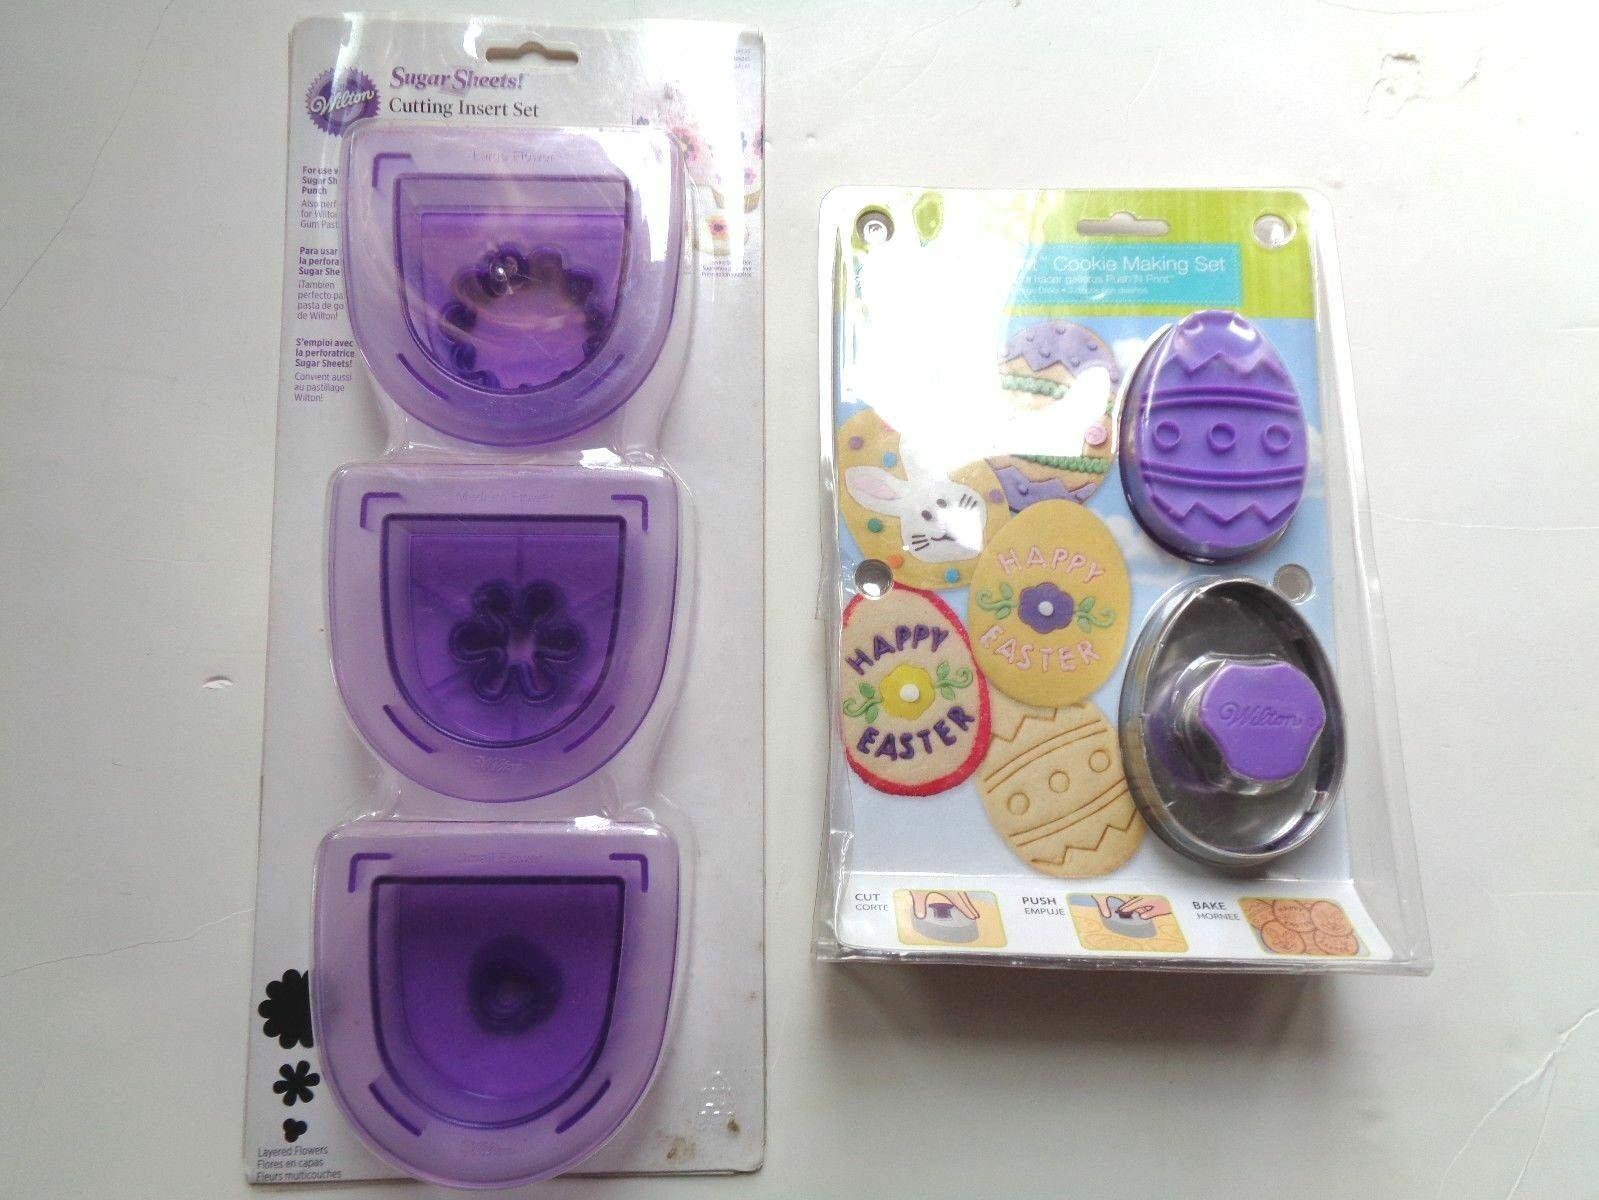 Primary image for NEW WILTON EASTER PUSH 'N PRINT COOKIE MAKING SET & WILTON CUTTING INSERT SET